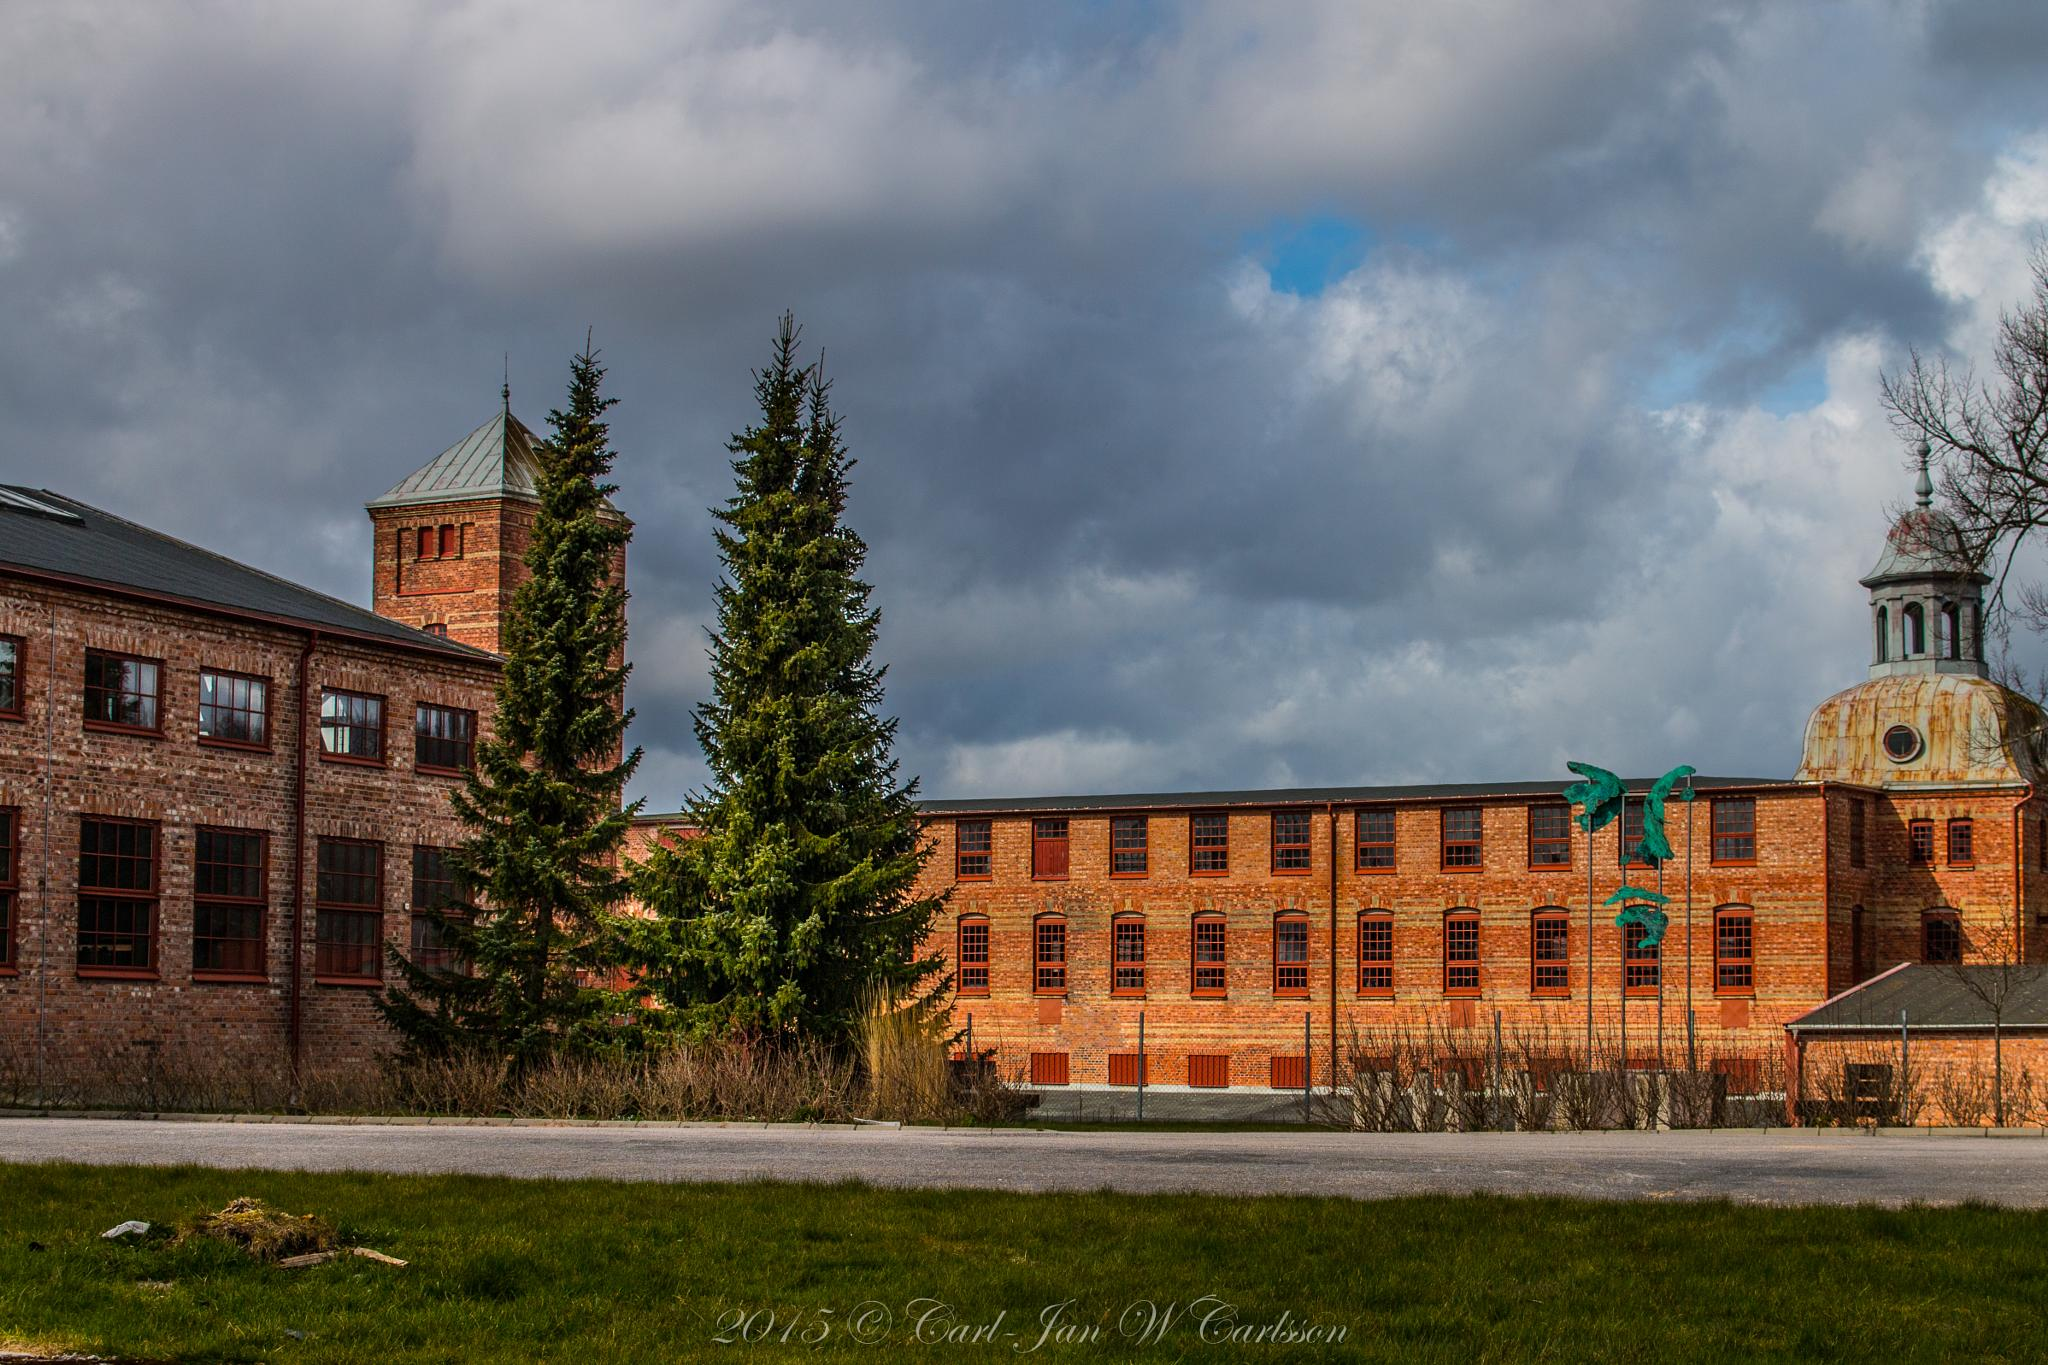 Old Factory Building by carljan w carlsson